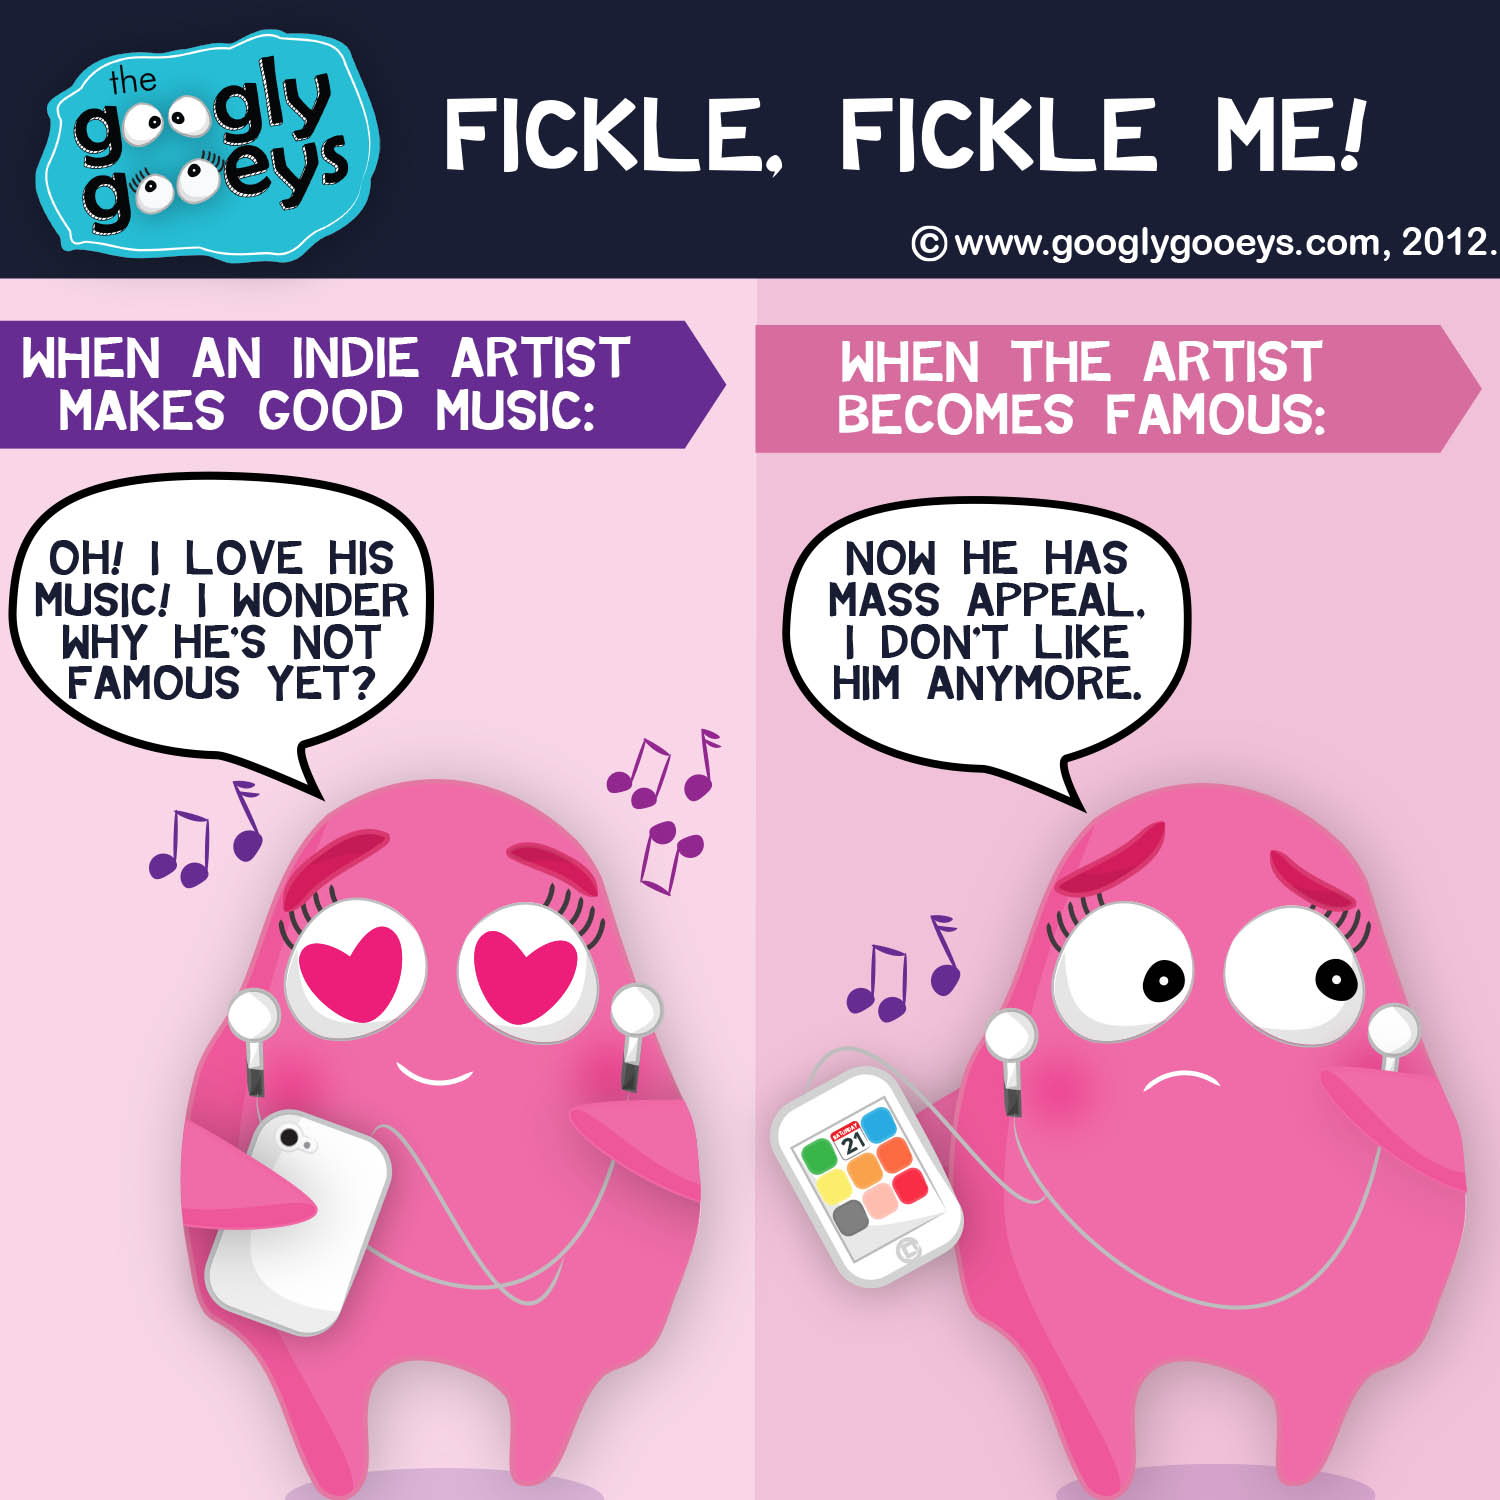 Hipster Problems: Oh, fickle fickle me!